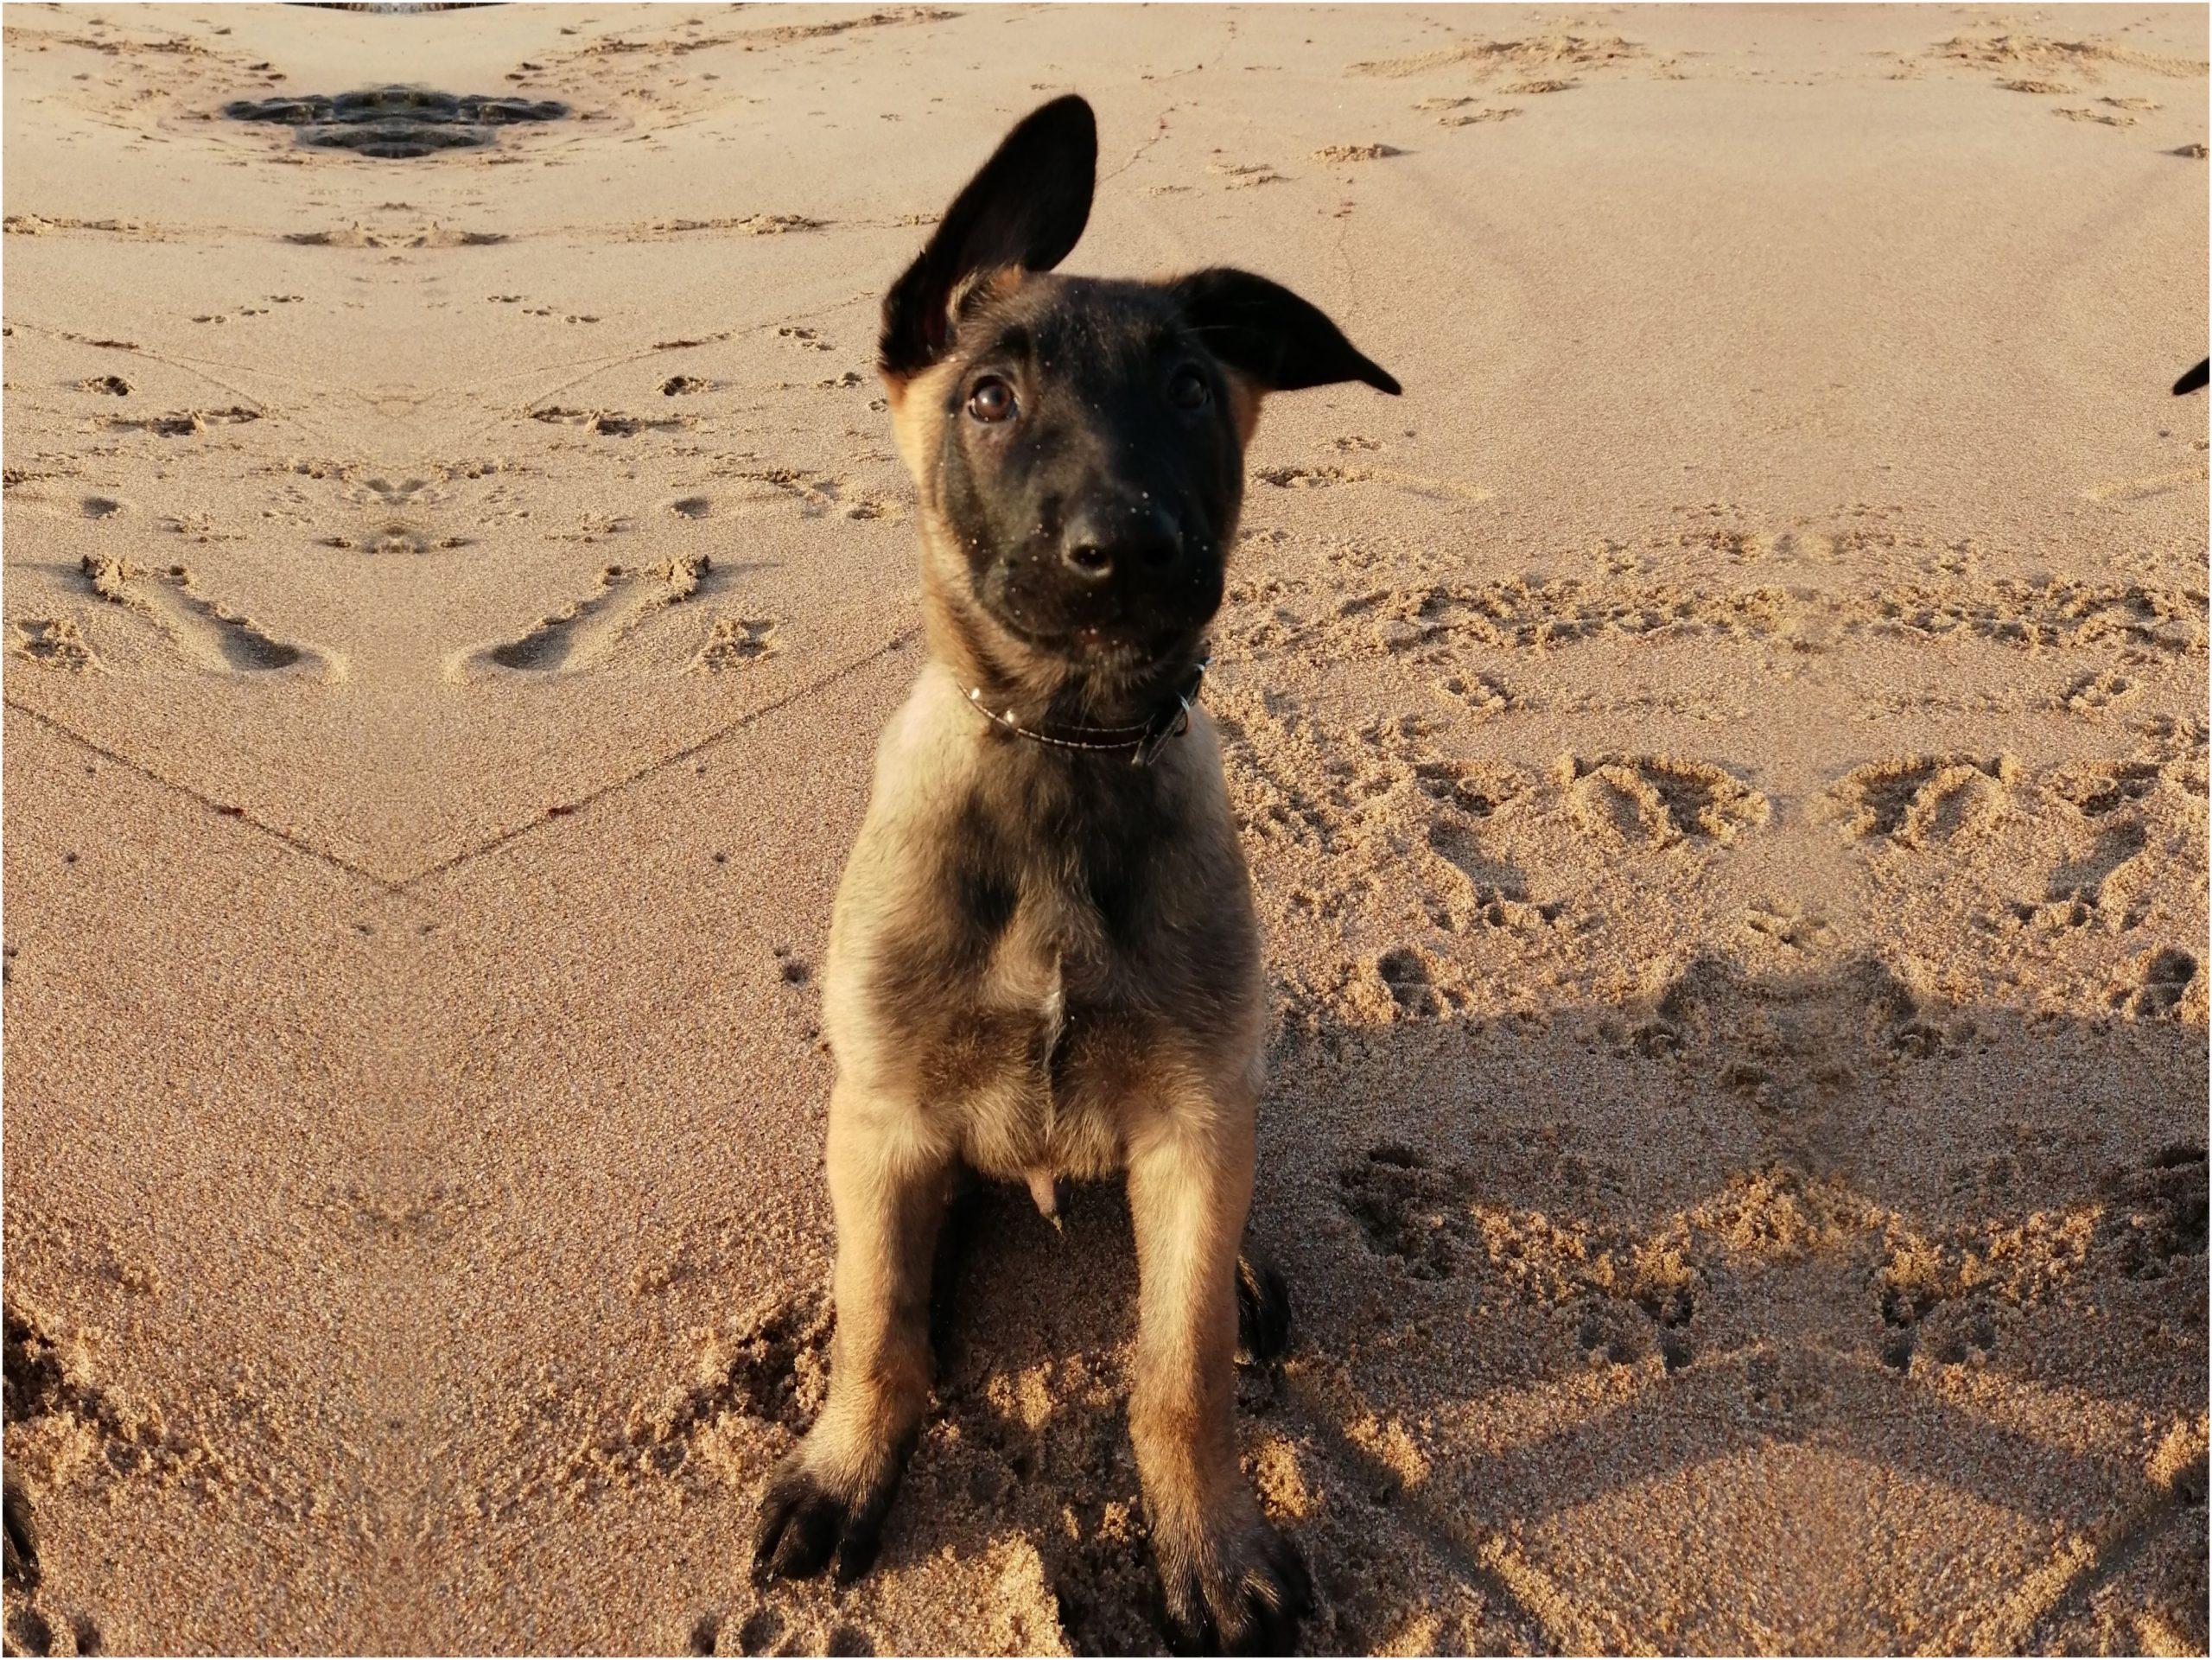 a puppy during obedience training at the beach